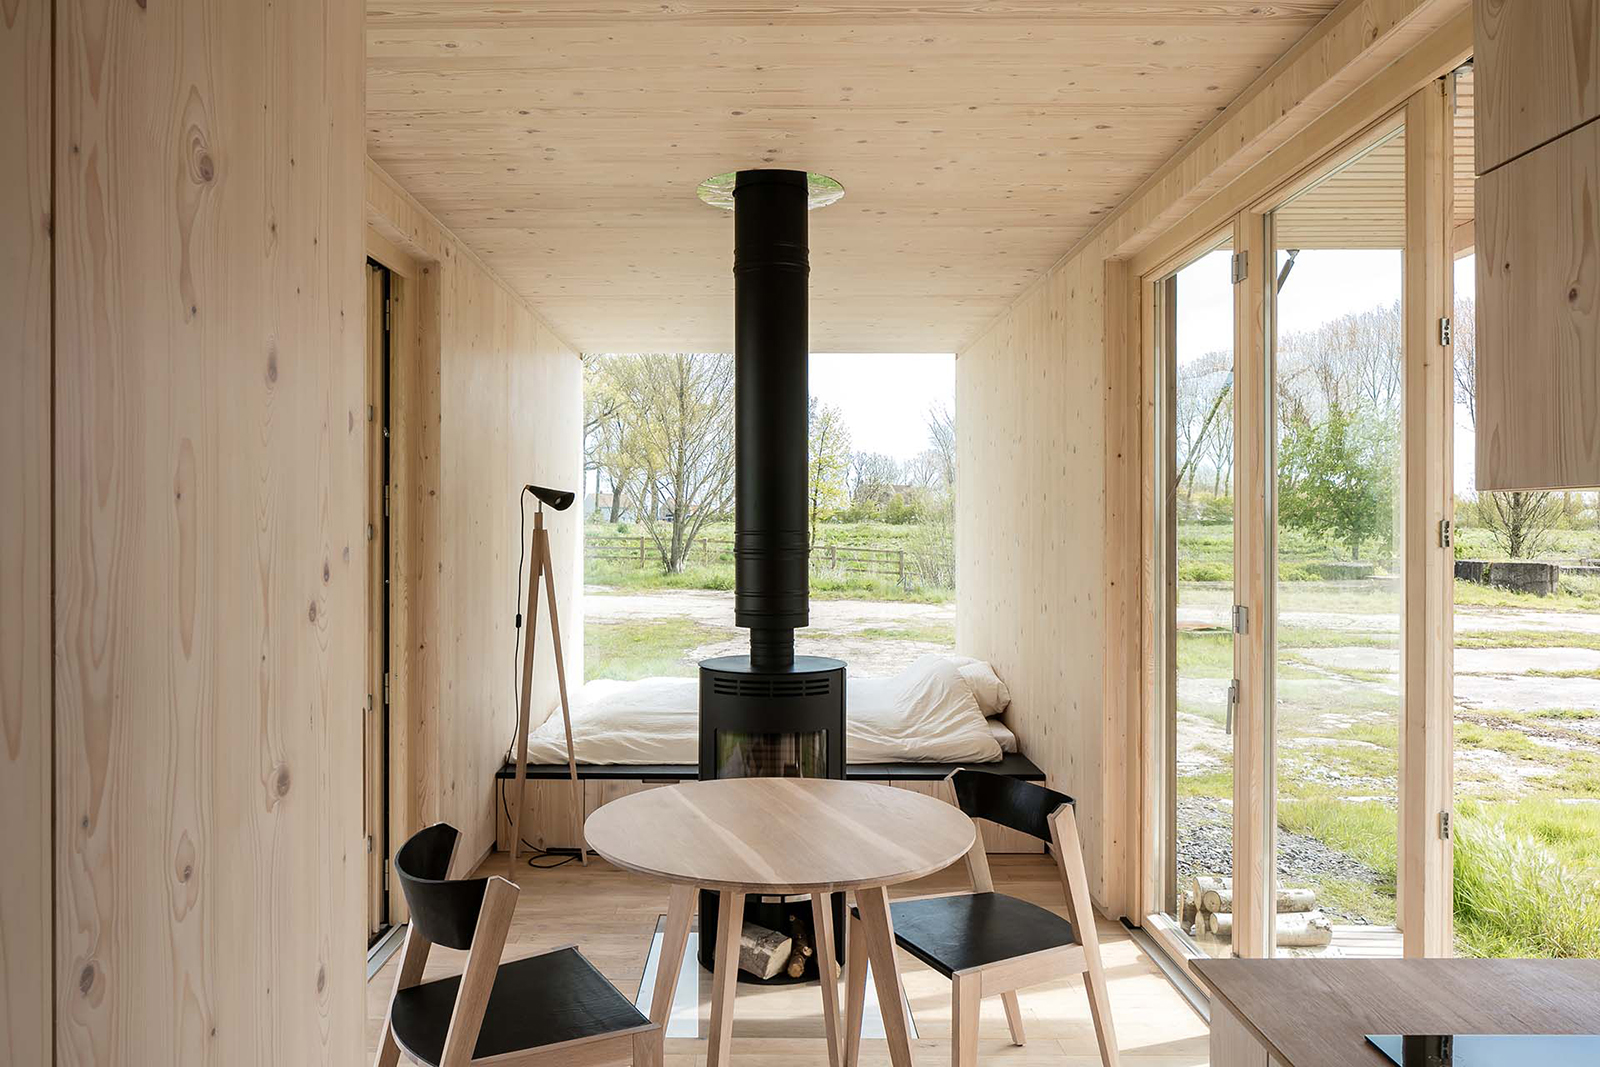 Tiny House Prix M2 10 of the best tiny homes you can buy for under €100k